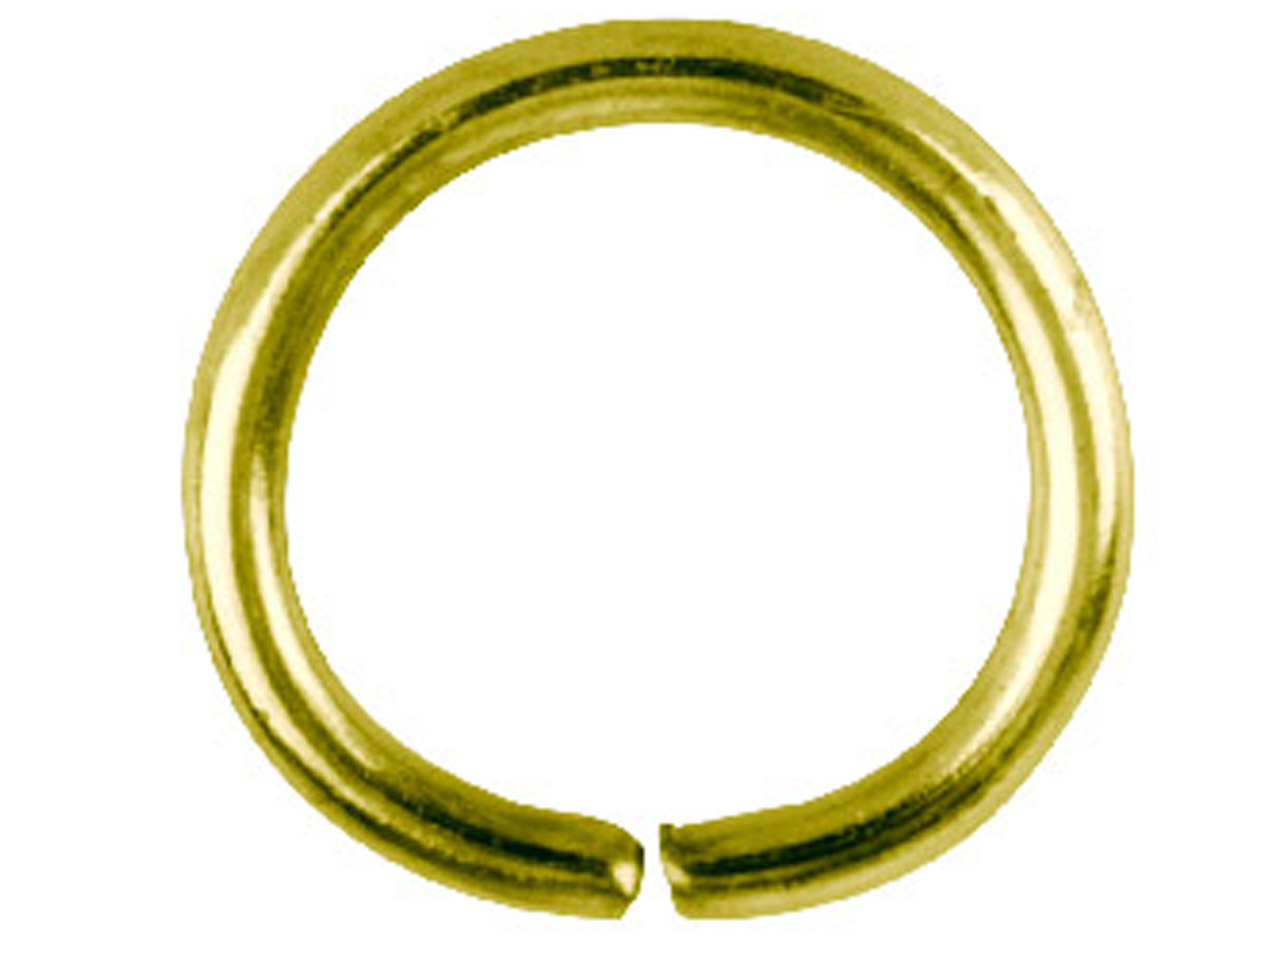 Gold Plated Jump Ring Round 10mm   Pack of 100,